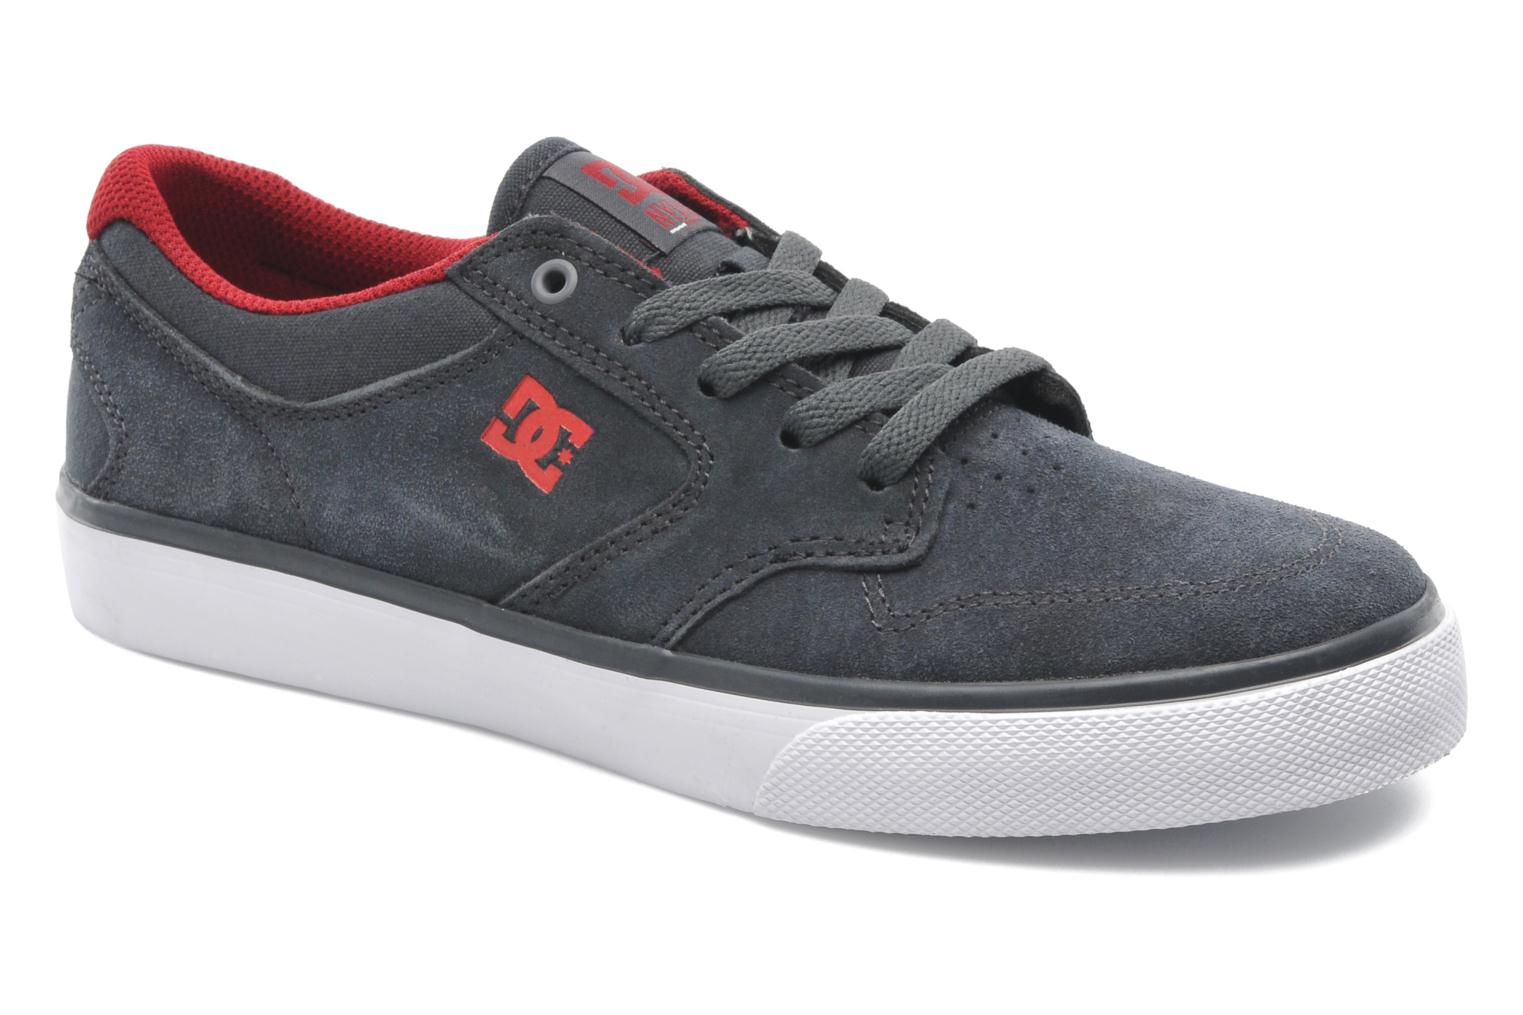 NYJAH VULC Kids by DC Shoes